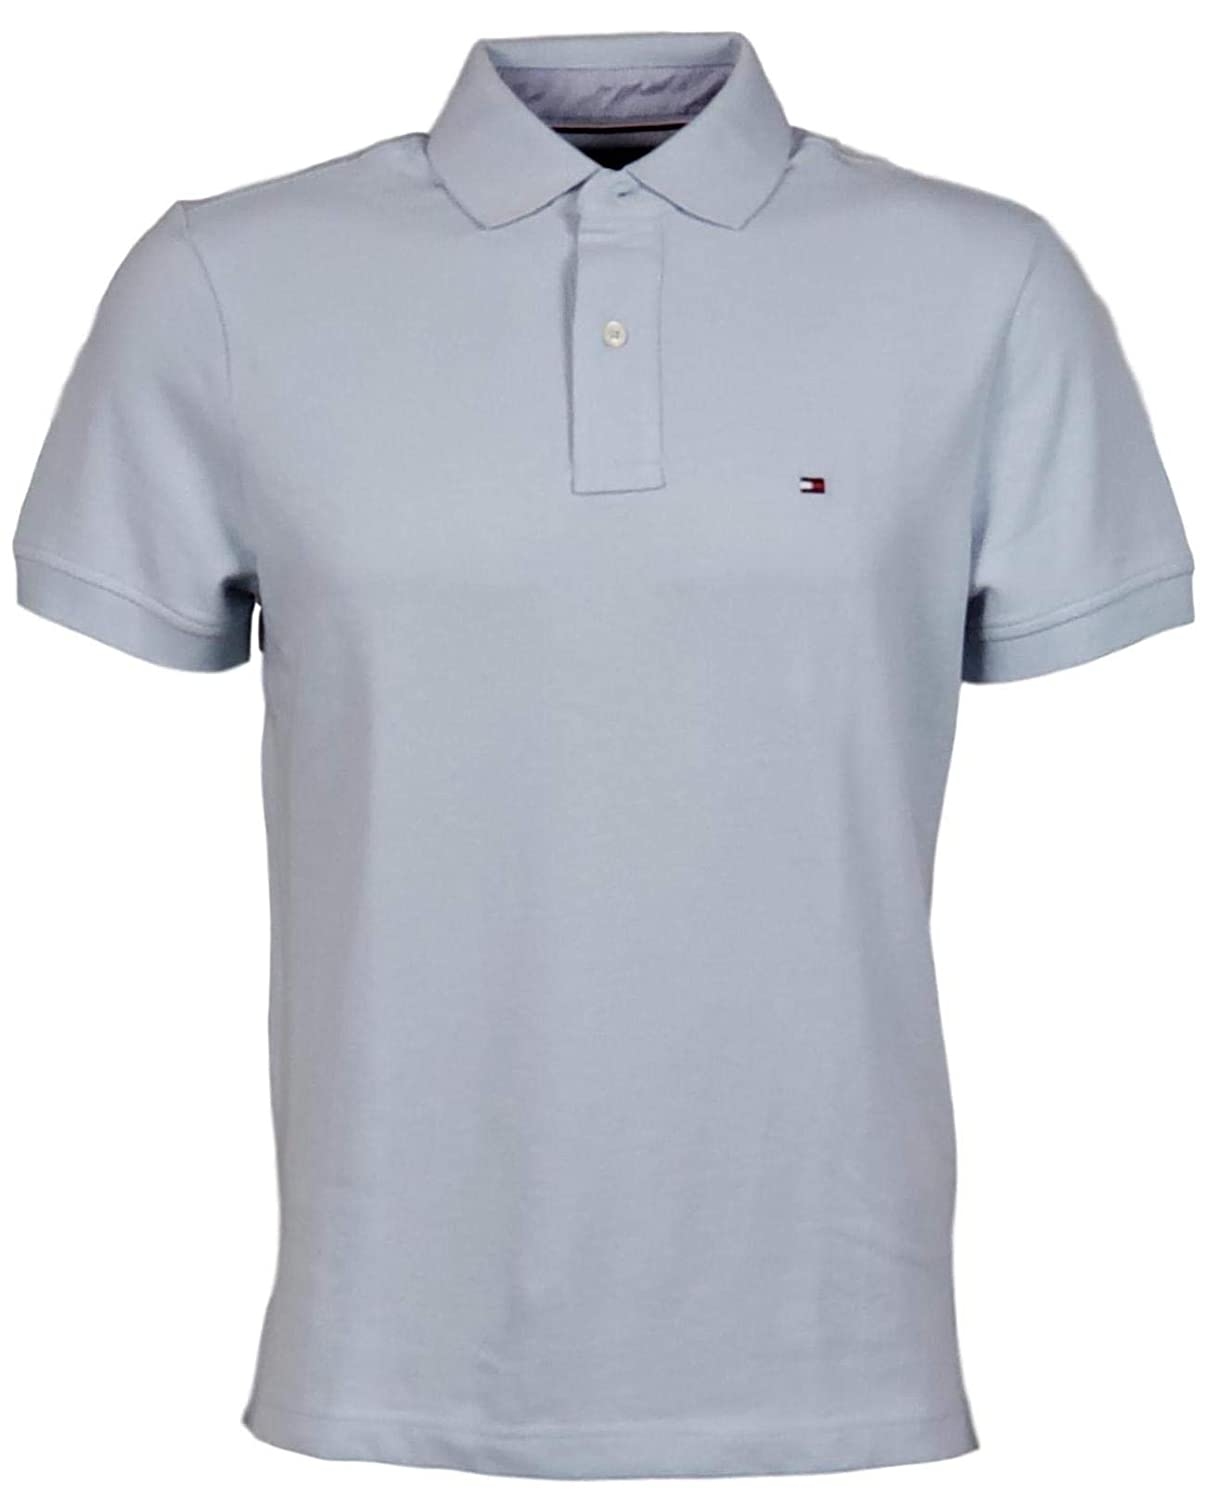 20106ced0 Tommy Hilfiger Men's Classic Fit Polo at Amazon Men's Clothing store: